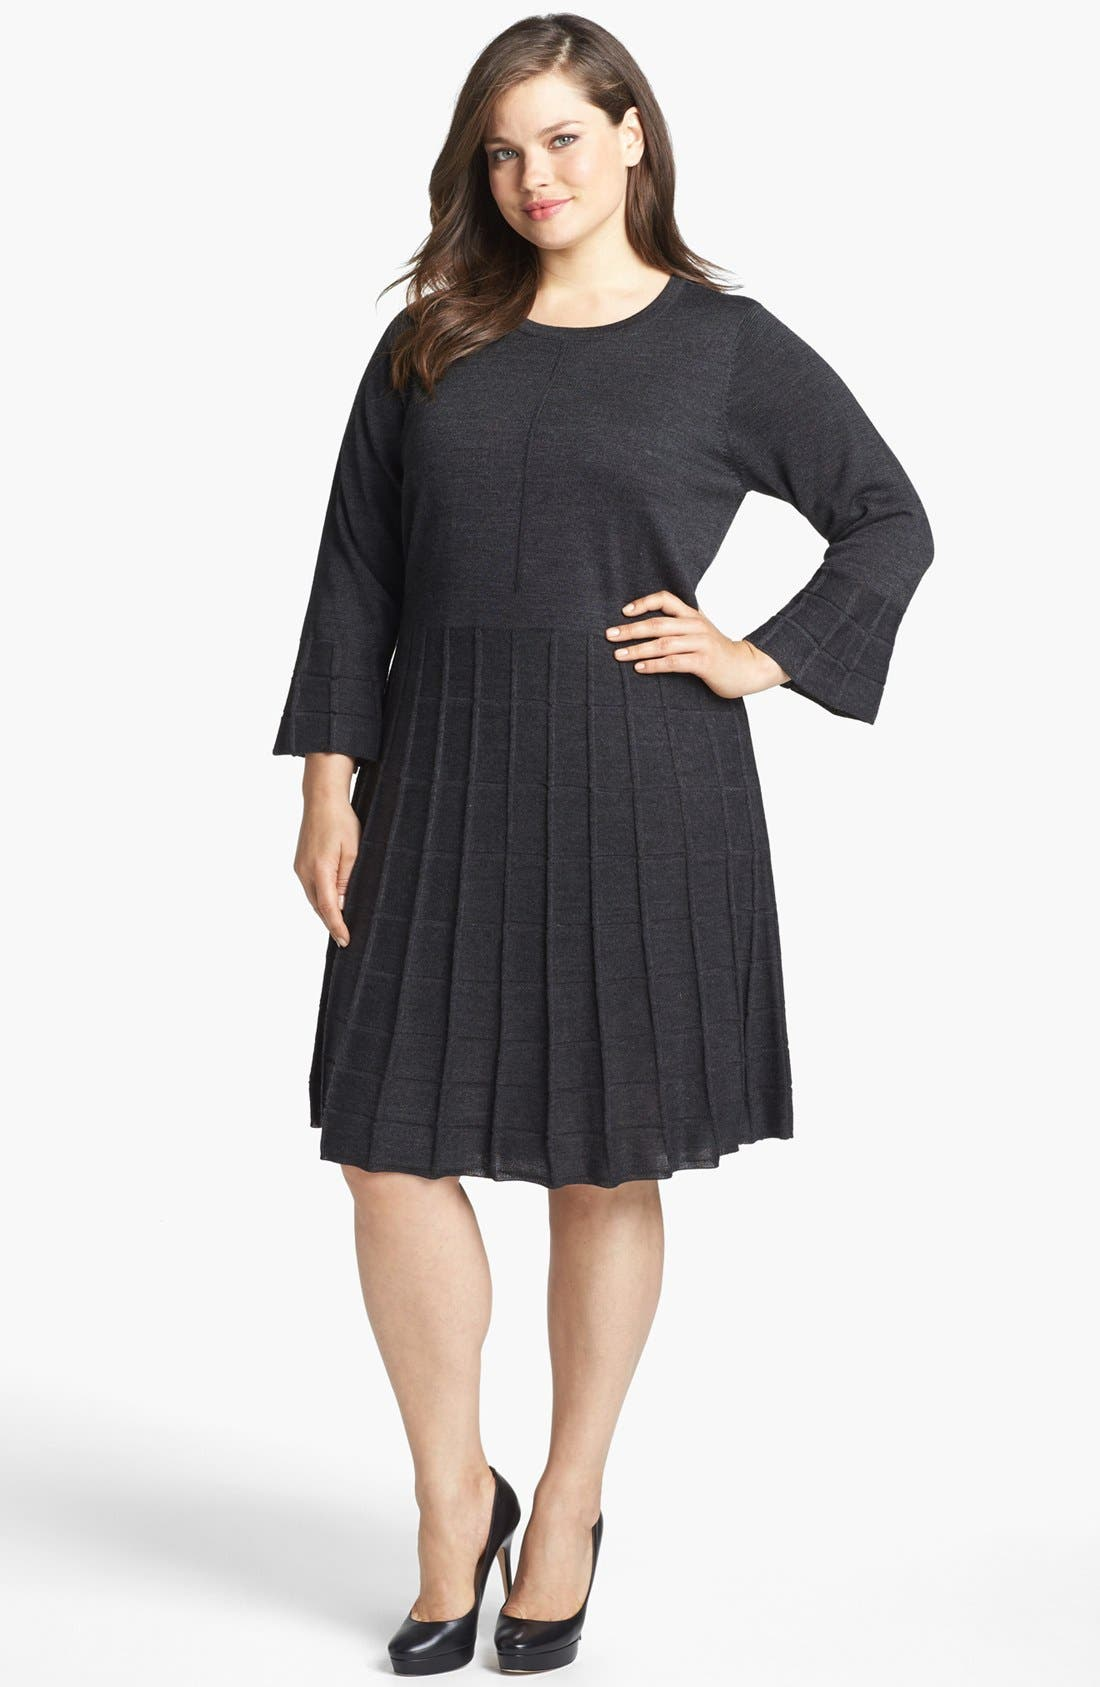 Alternate Image 1 Selected - Calvin Klein Fit & Flare Textured Sweater Dress (Plus Size)